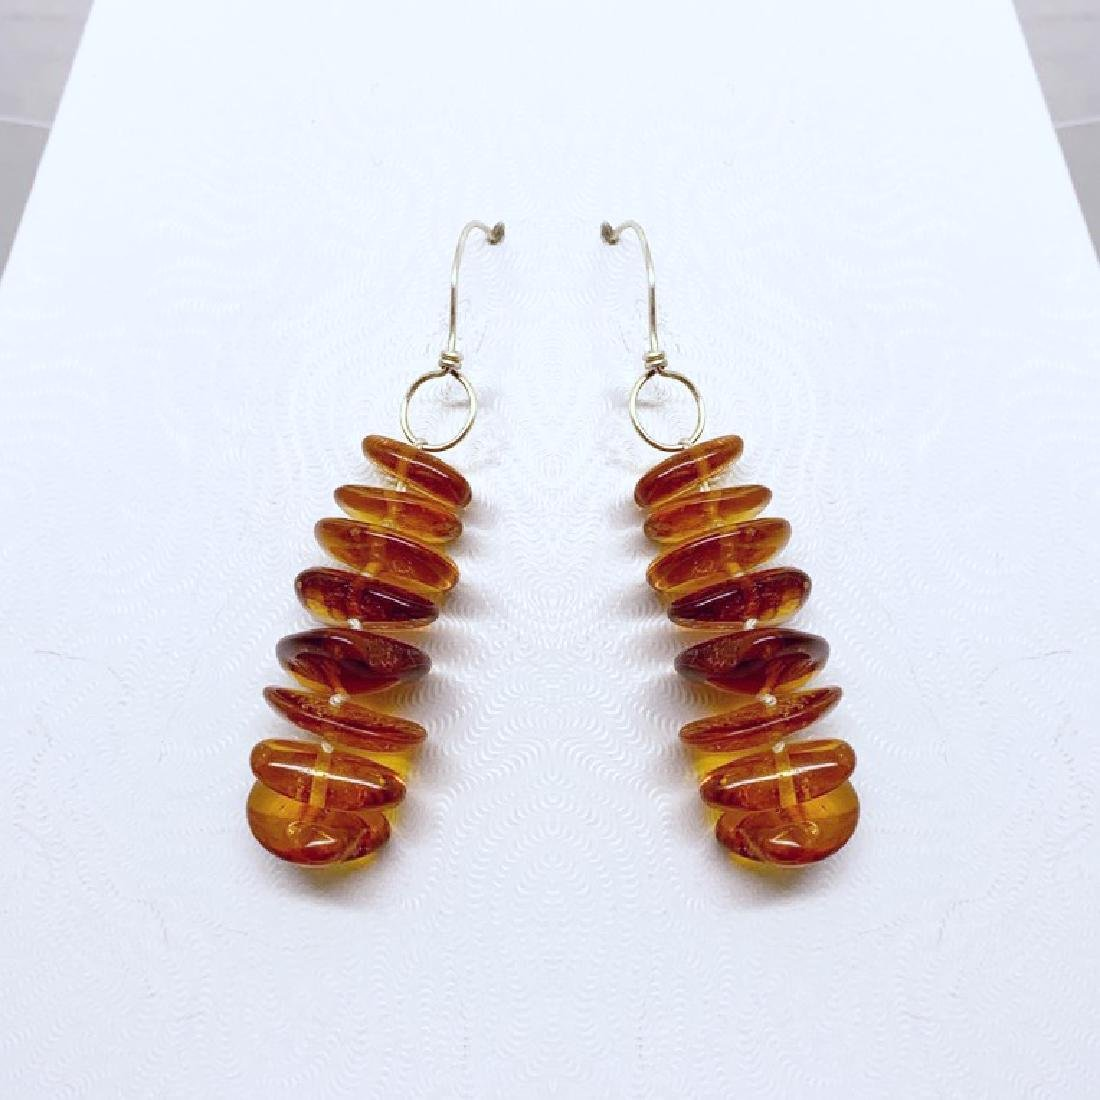 sterling silver baltic amber bead earrings #10 - 2